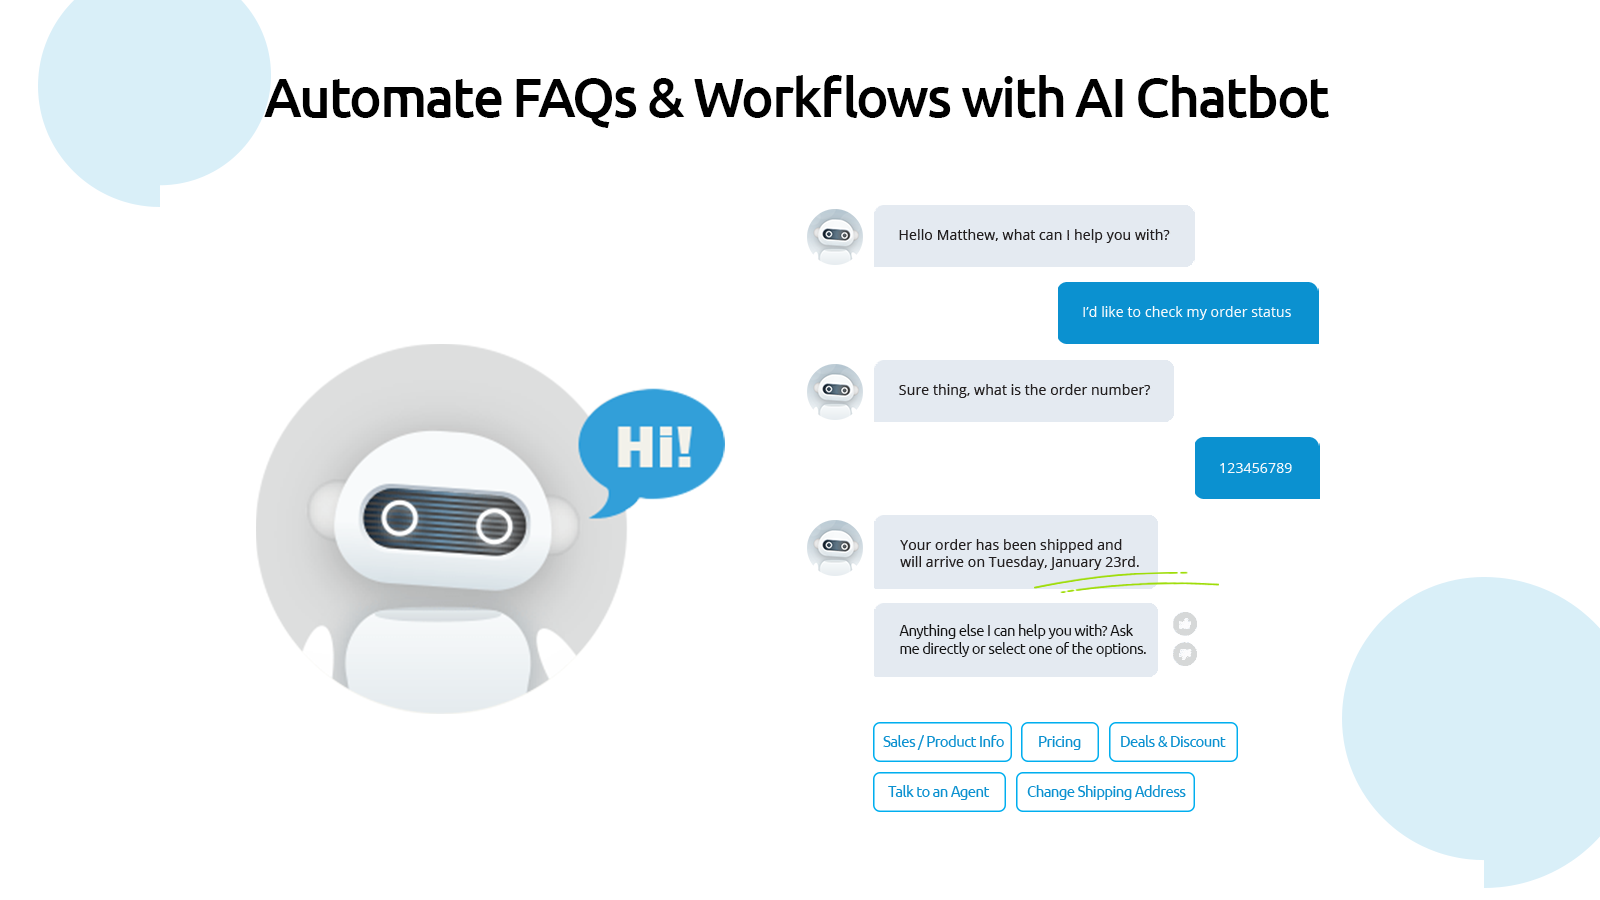 Automate FAQs & Workflows with AI Chatbot